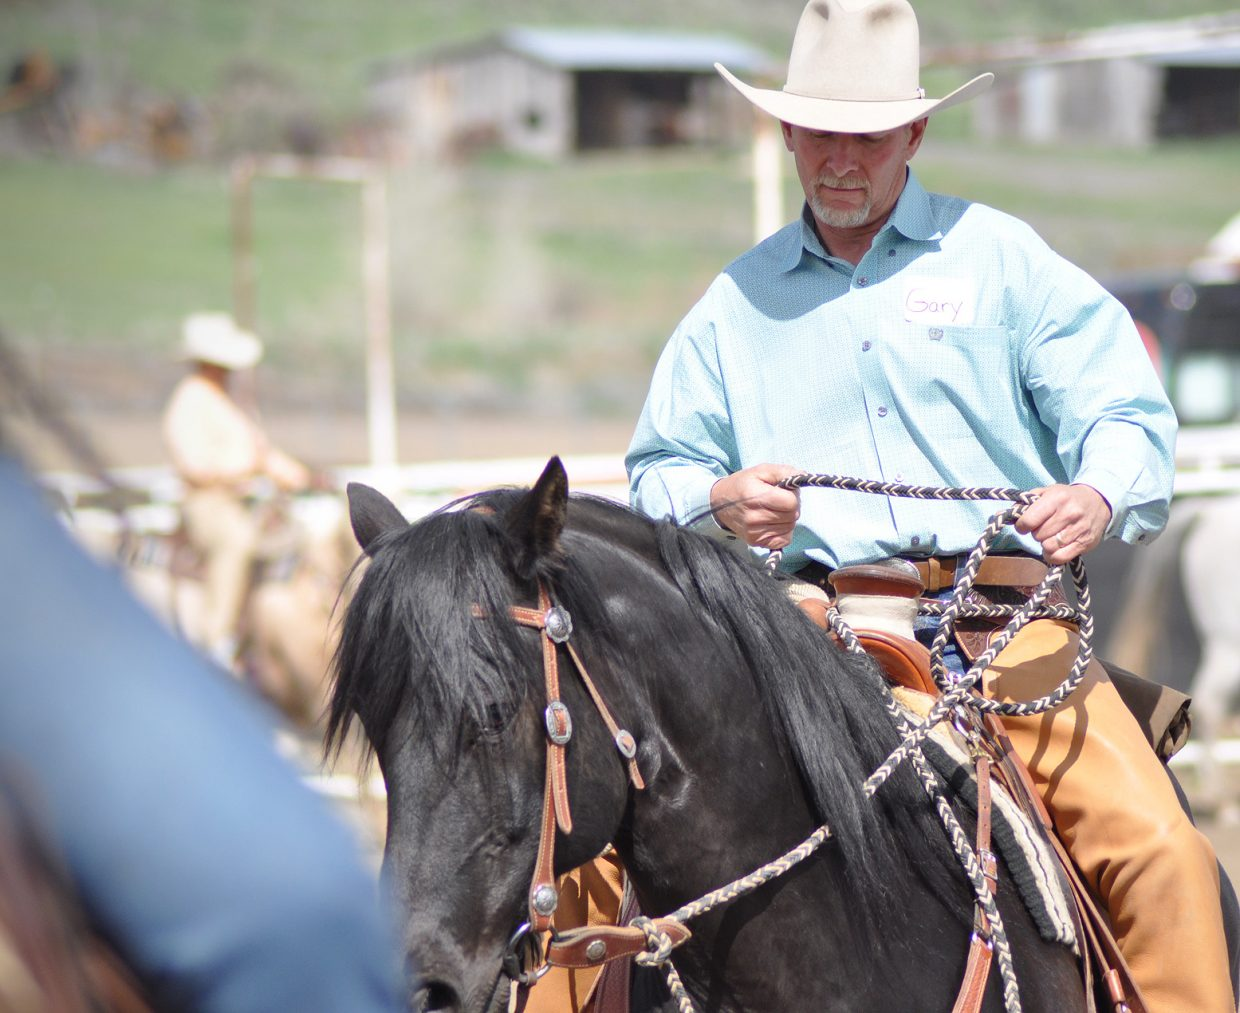 Buck Brannaman clinic in Hayden. Submitted by: Wendy Lind